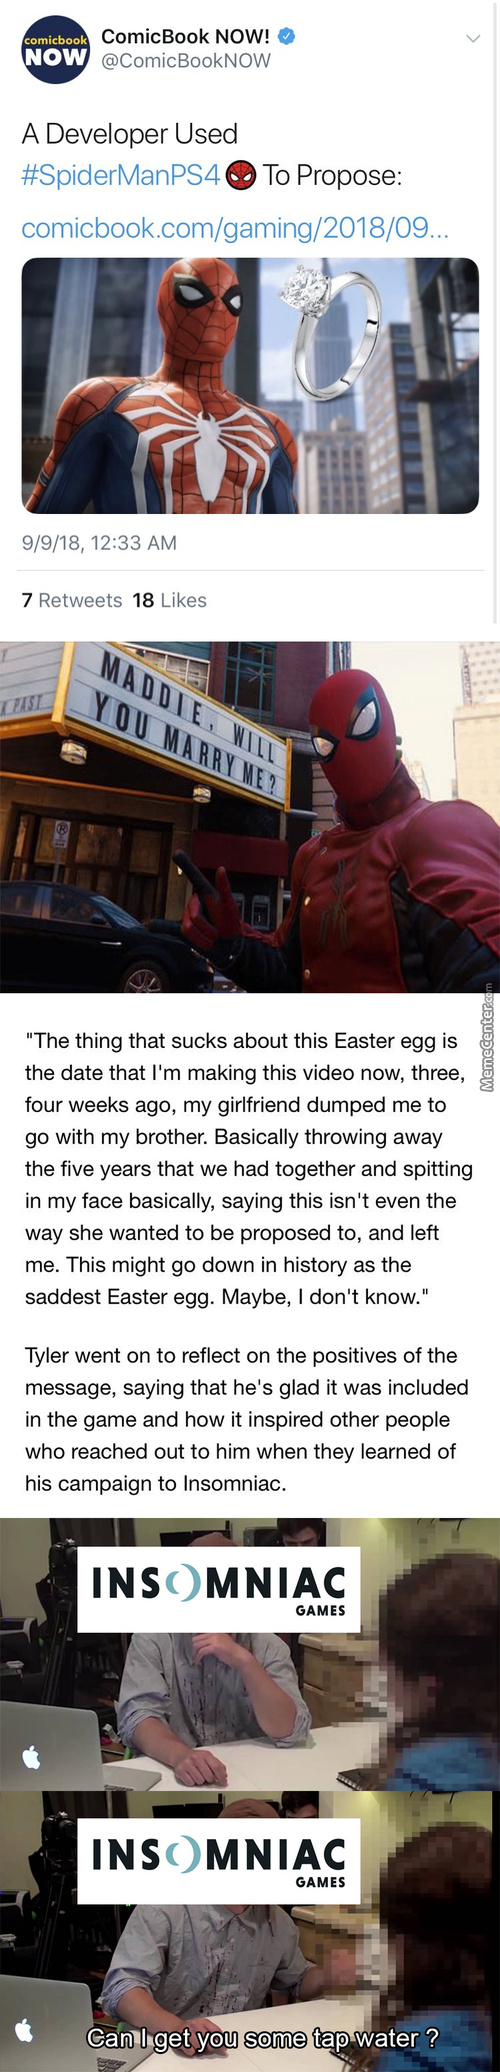 Probably One Of The Saddest Easter Eggs In Gaming Now (The Developers Are Removing It Btw)